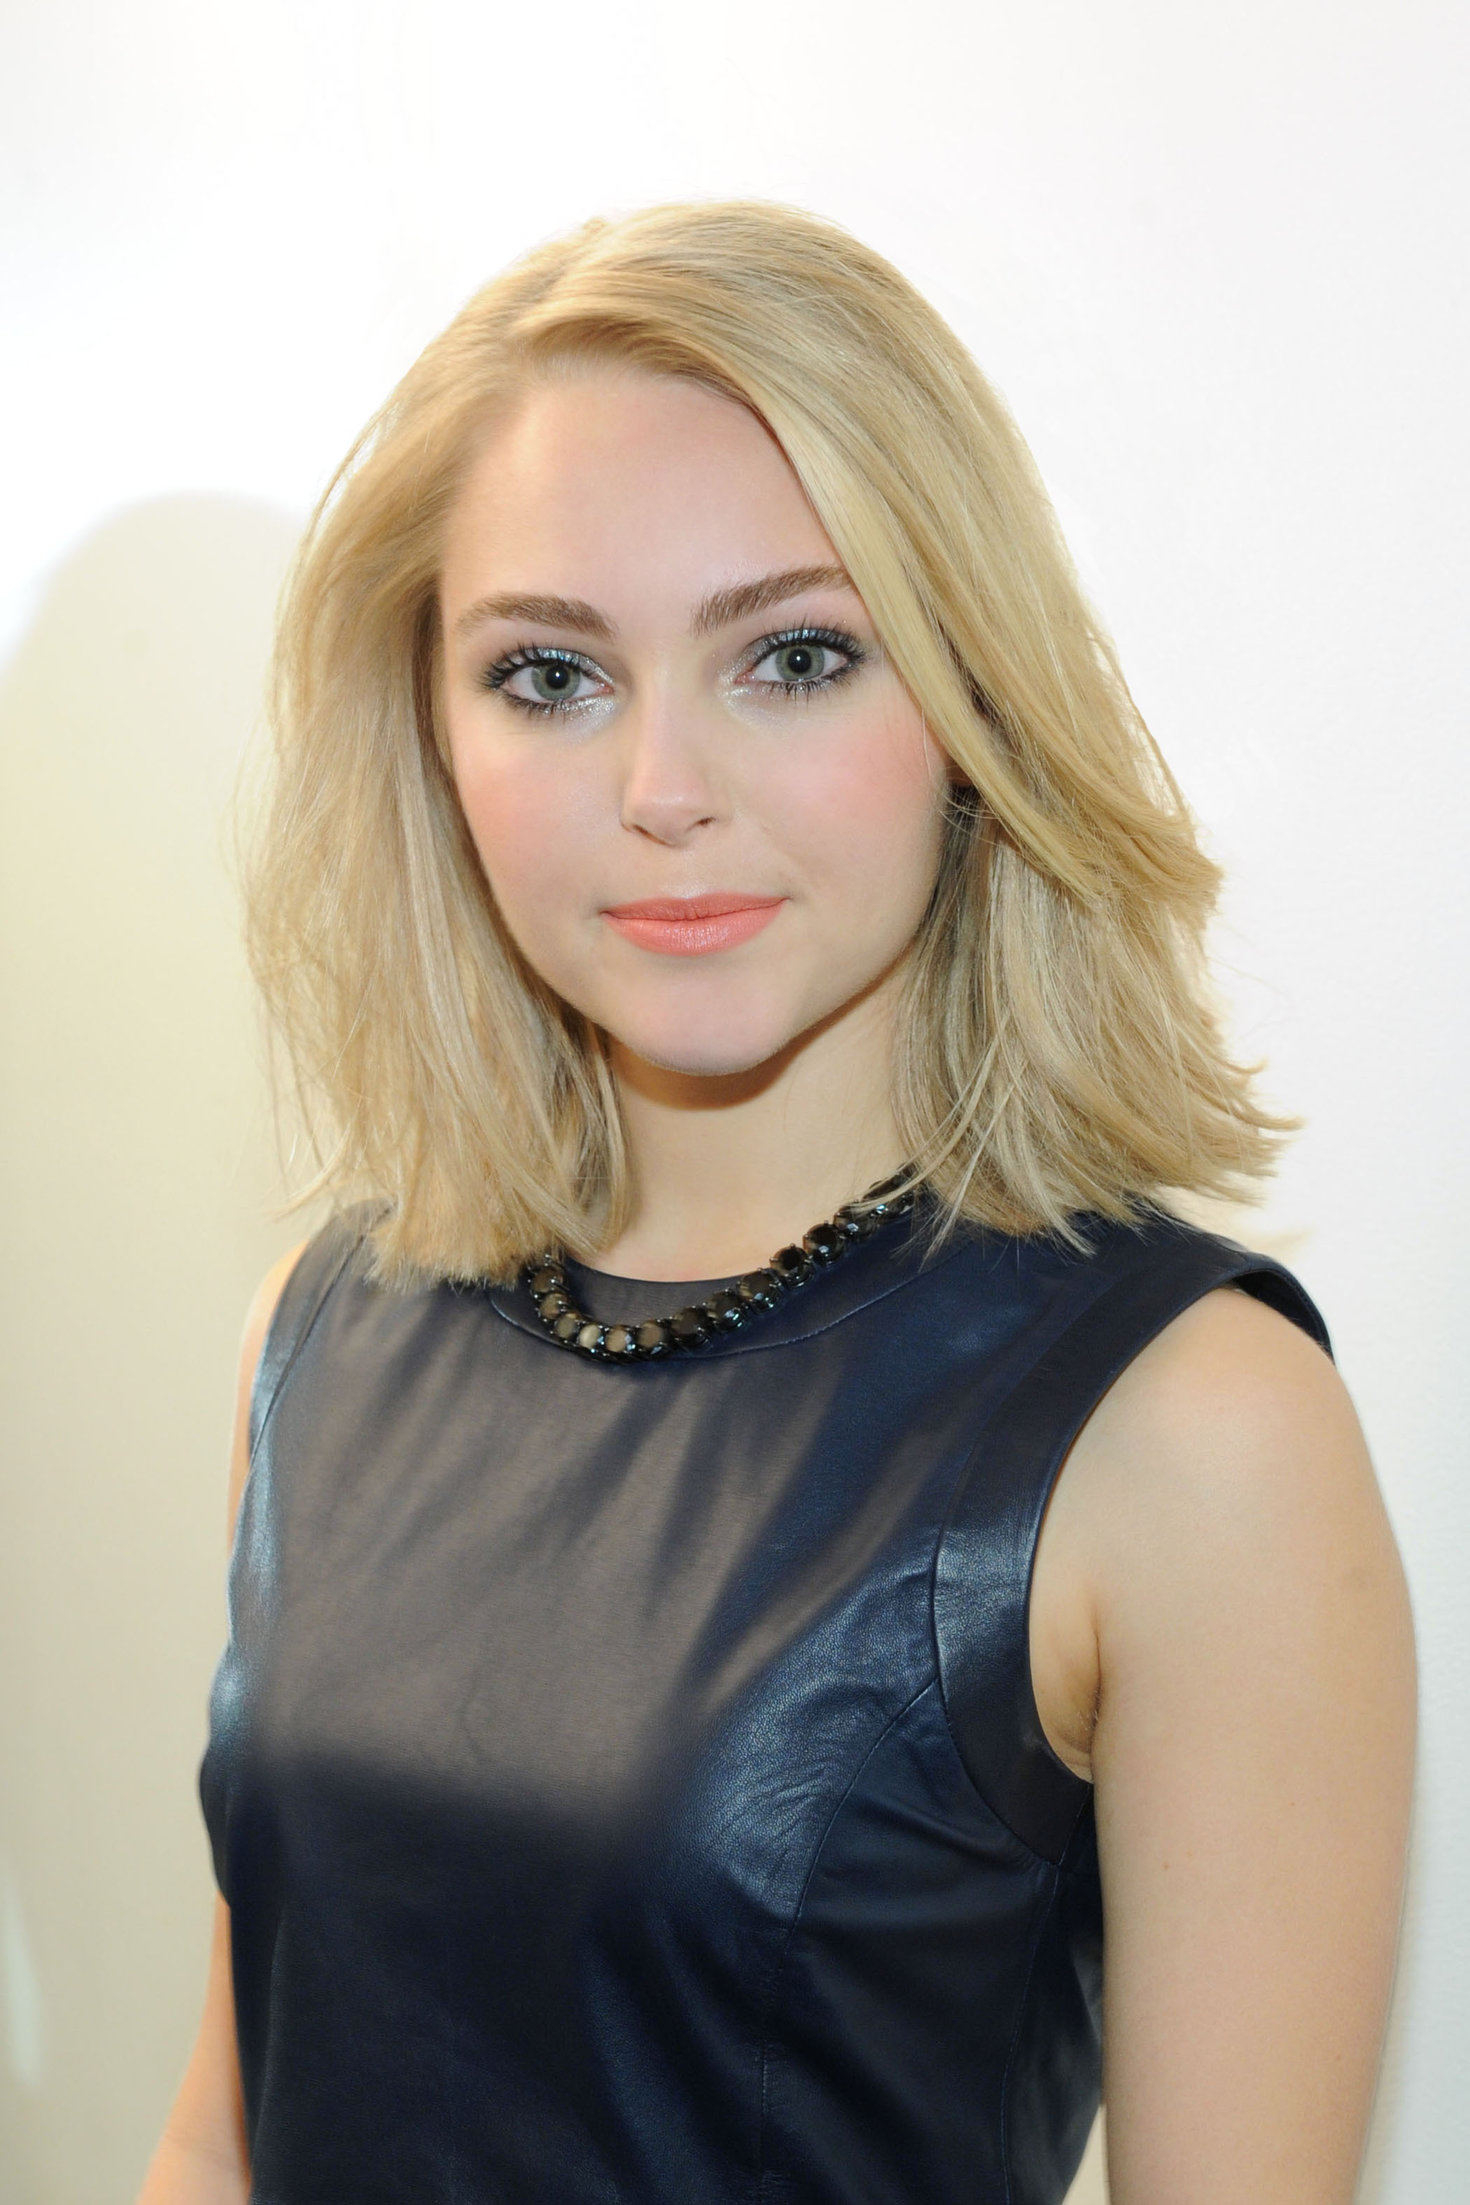 AnnaSophia Robb - Portraits At The Today Show In New York January 24, 2013